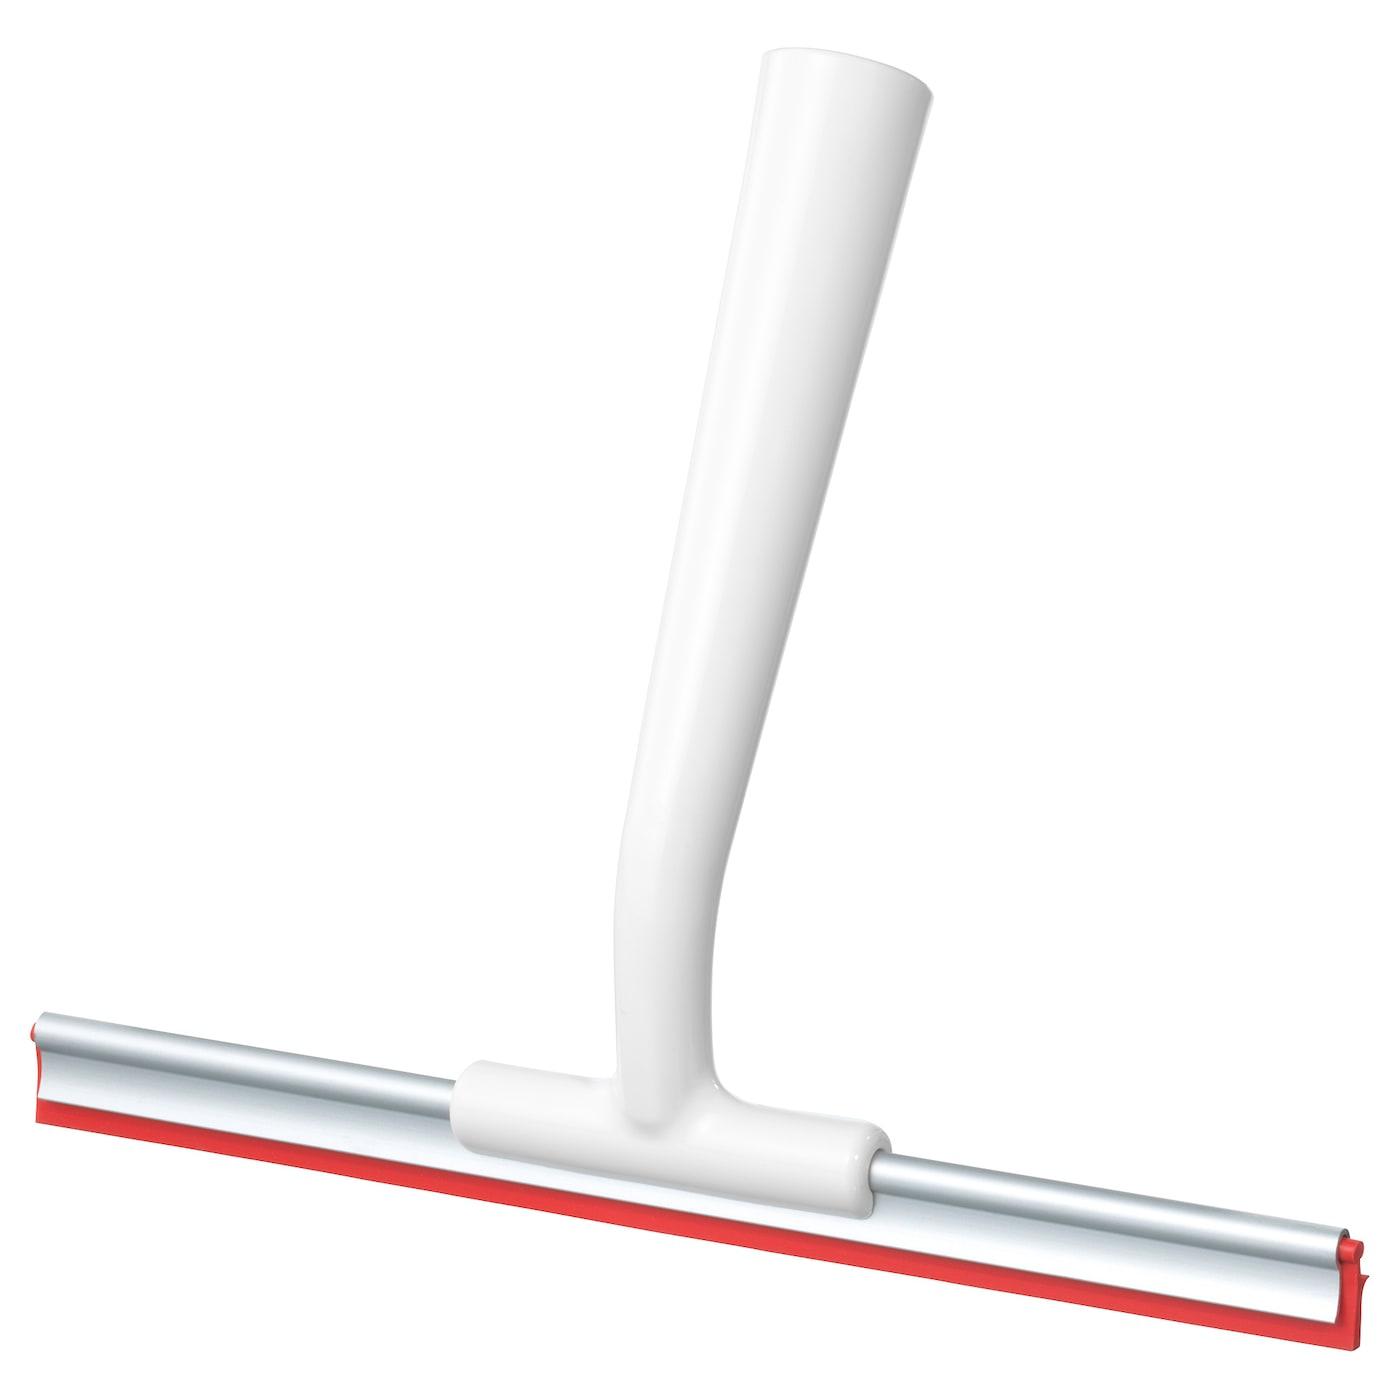 IKEA LILLNAGGEN squeegee You can use the squeegee both for windows and shower surfaces.